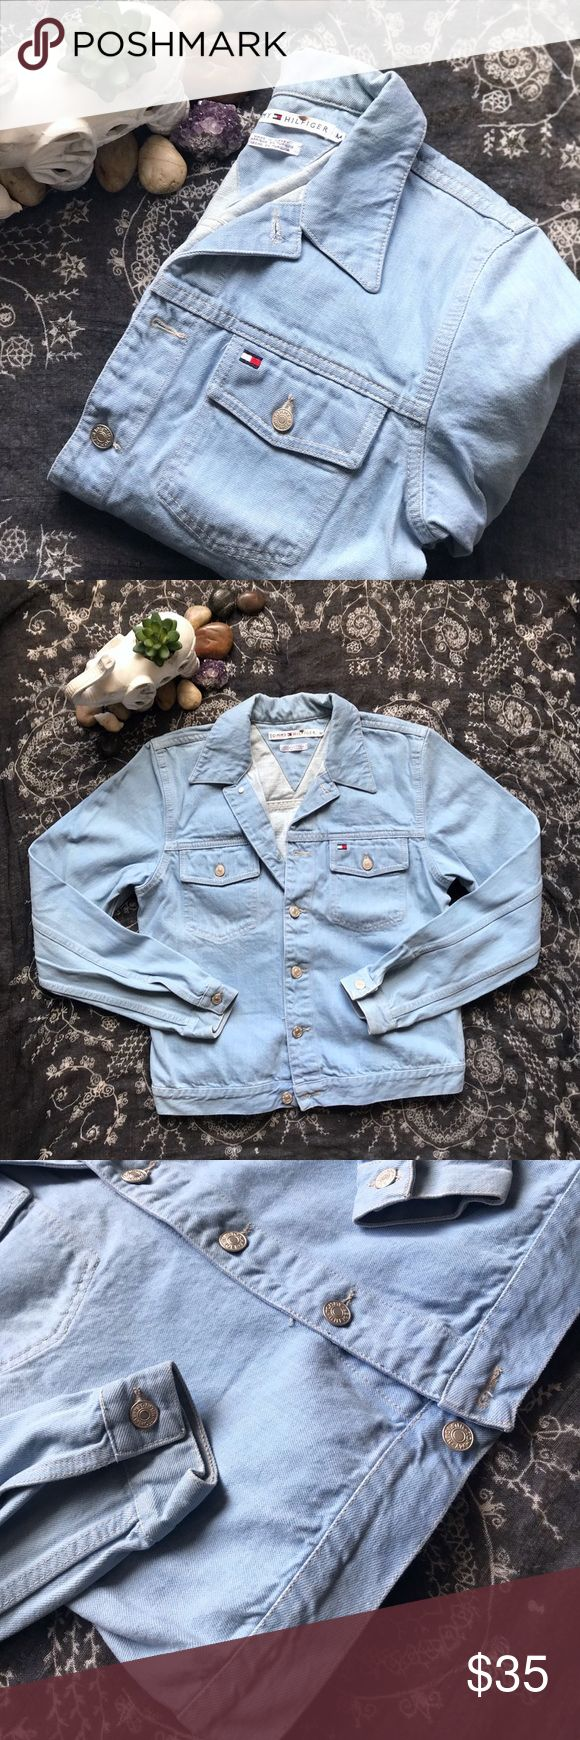 "Tommy Hilfiger-Oversized Light Blue Denim Jacket- Super cute to add to your wardrobe, looks perfect to throw on with a cute spring dress! 🌻 In great condition, a 3 light spots on back, on neck area. See pictures please!  Ask any questions if you need :)  Size: Medium  Measurements:  Arm Length: 24"" Body Length: 21"" Neckline: 5"" across (Buttoned) Bust: 37"" around (Buttoned) Bottom: 35"" Waist: 37"" around (Buttoned)  Love this? Bundle now w/ 10% off 2 or more items!! 💕 Tommy Hilfiger Jackets…"